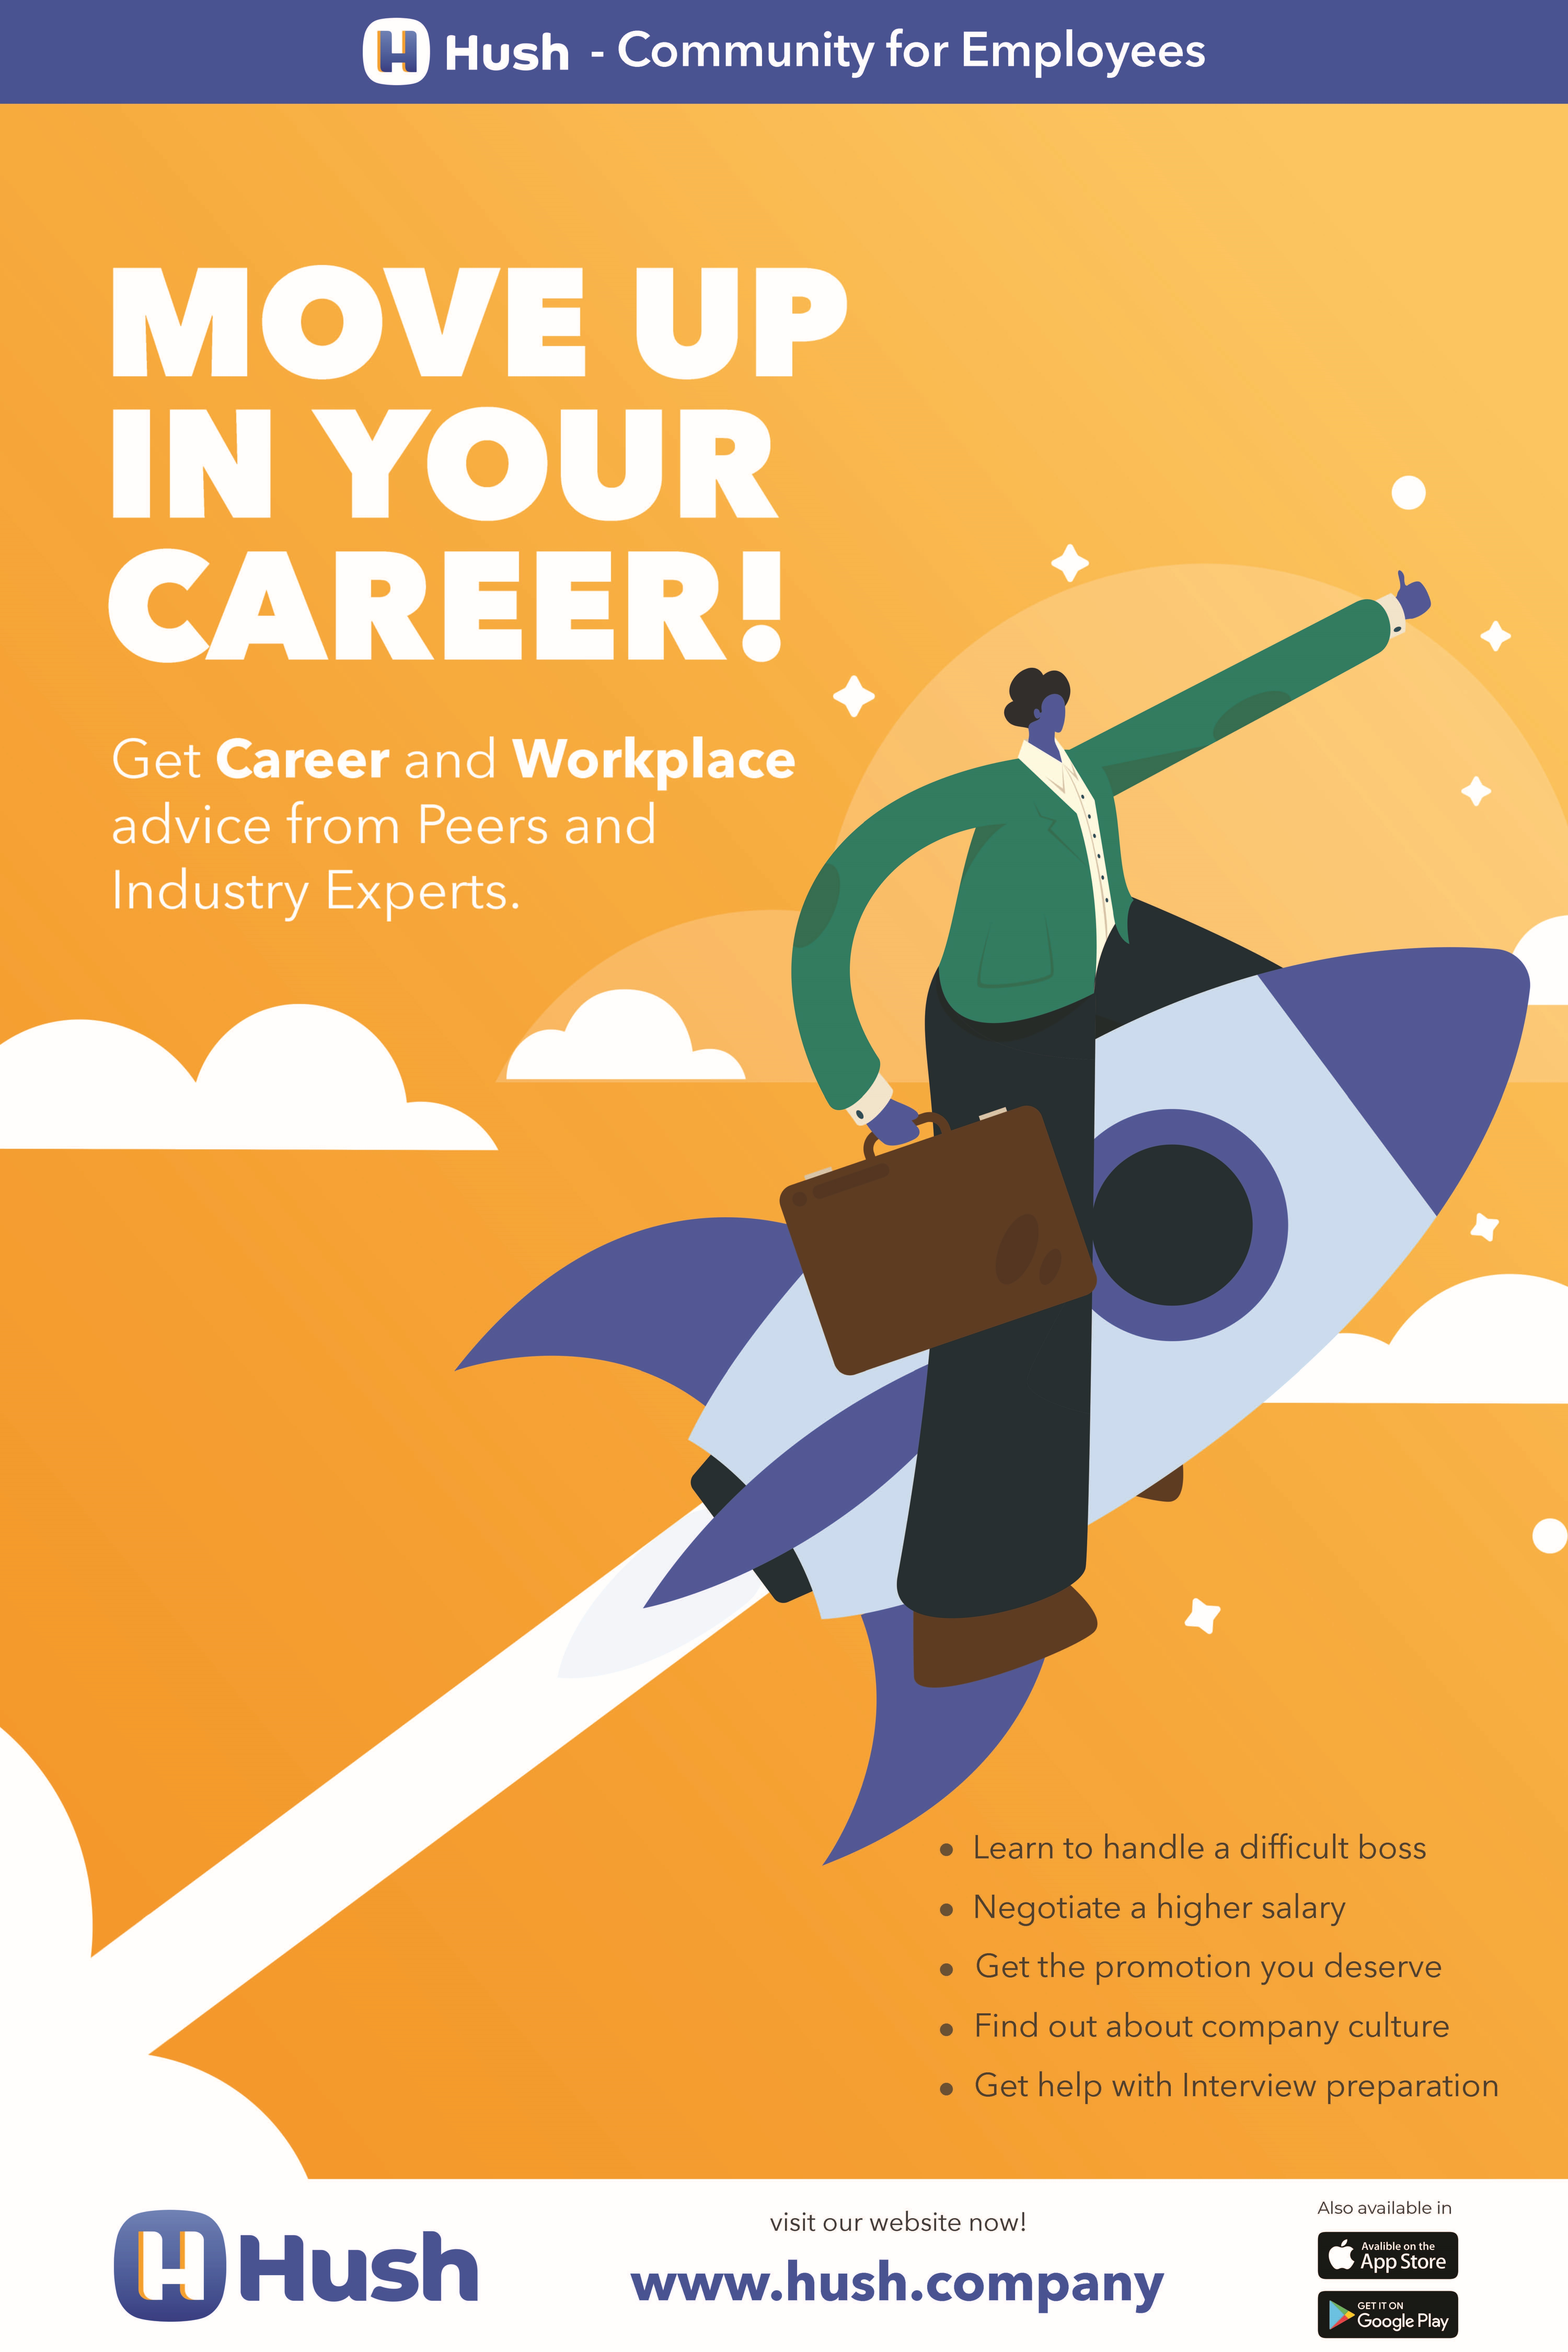 Hush | Move Up In Your Career!